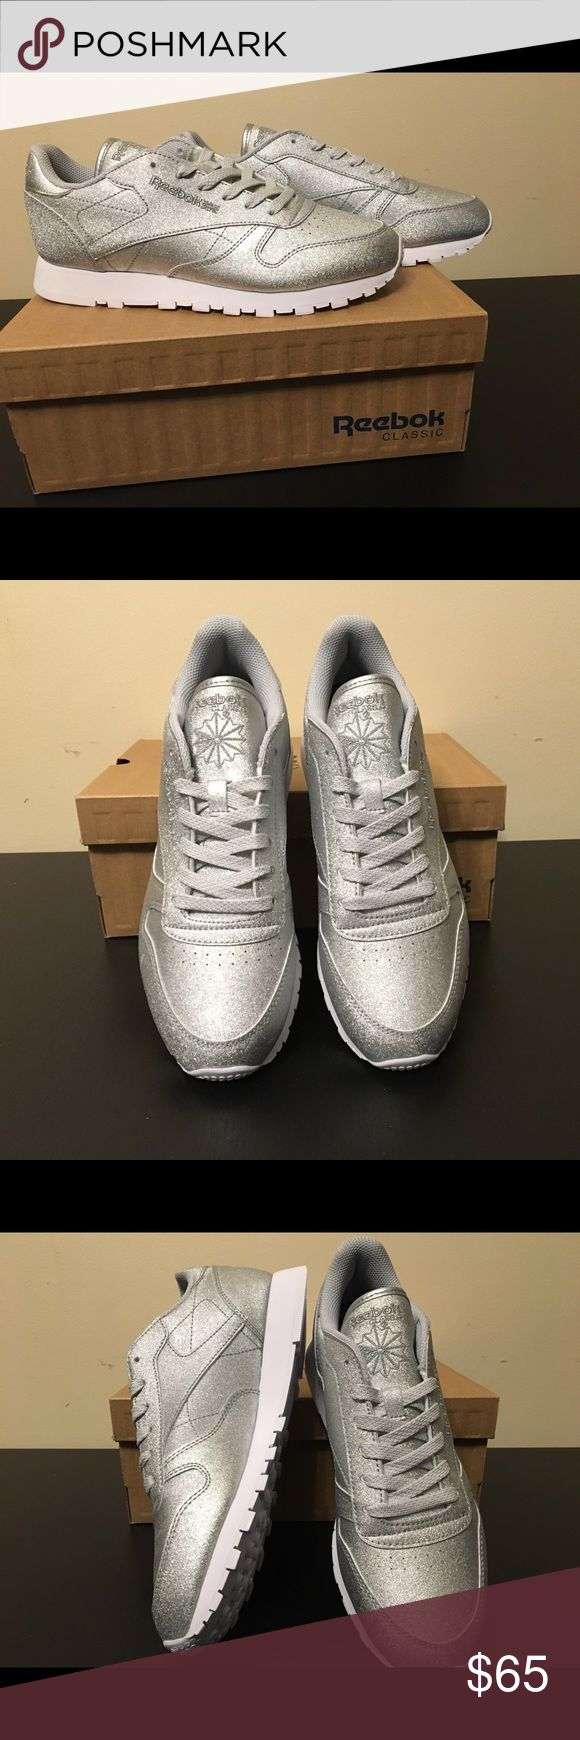 Reebok Classic Leather, Women's, Size 8 High-cushion, ultra-soft leather that will guarantee your comfort, silver color Reebok Shoes Athletic Shoes